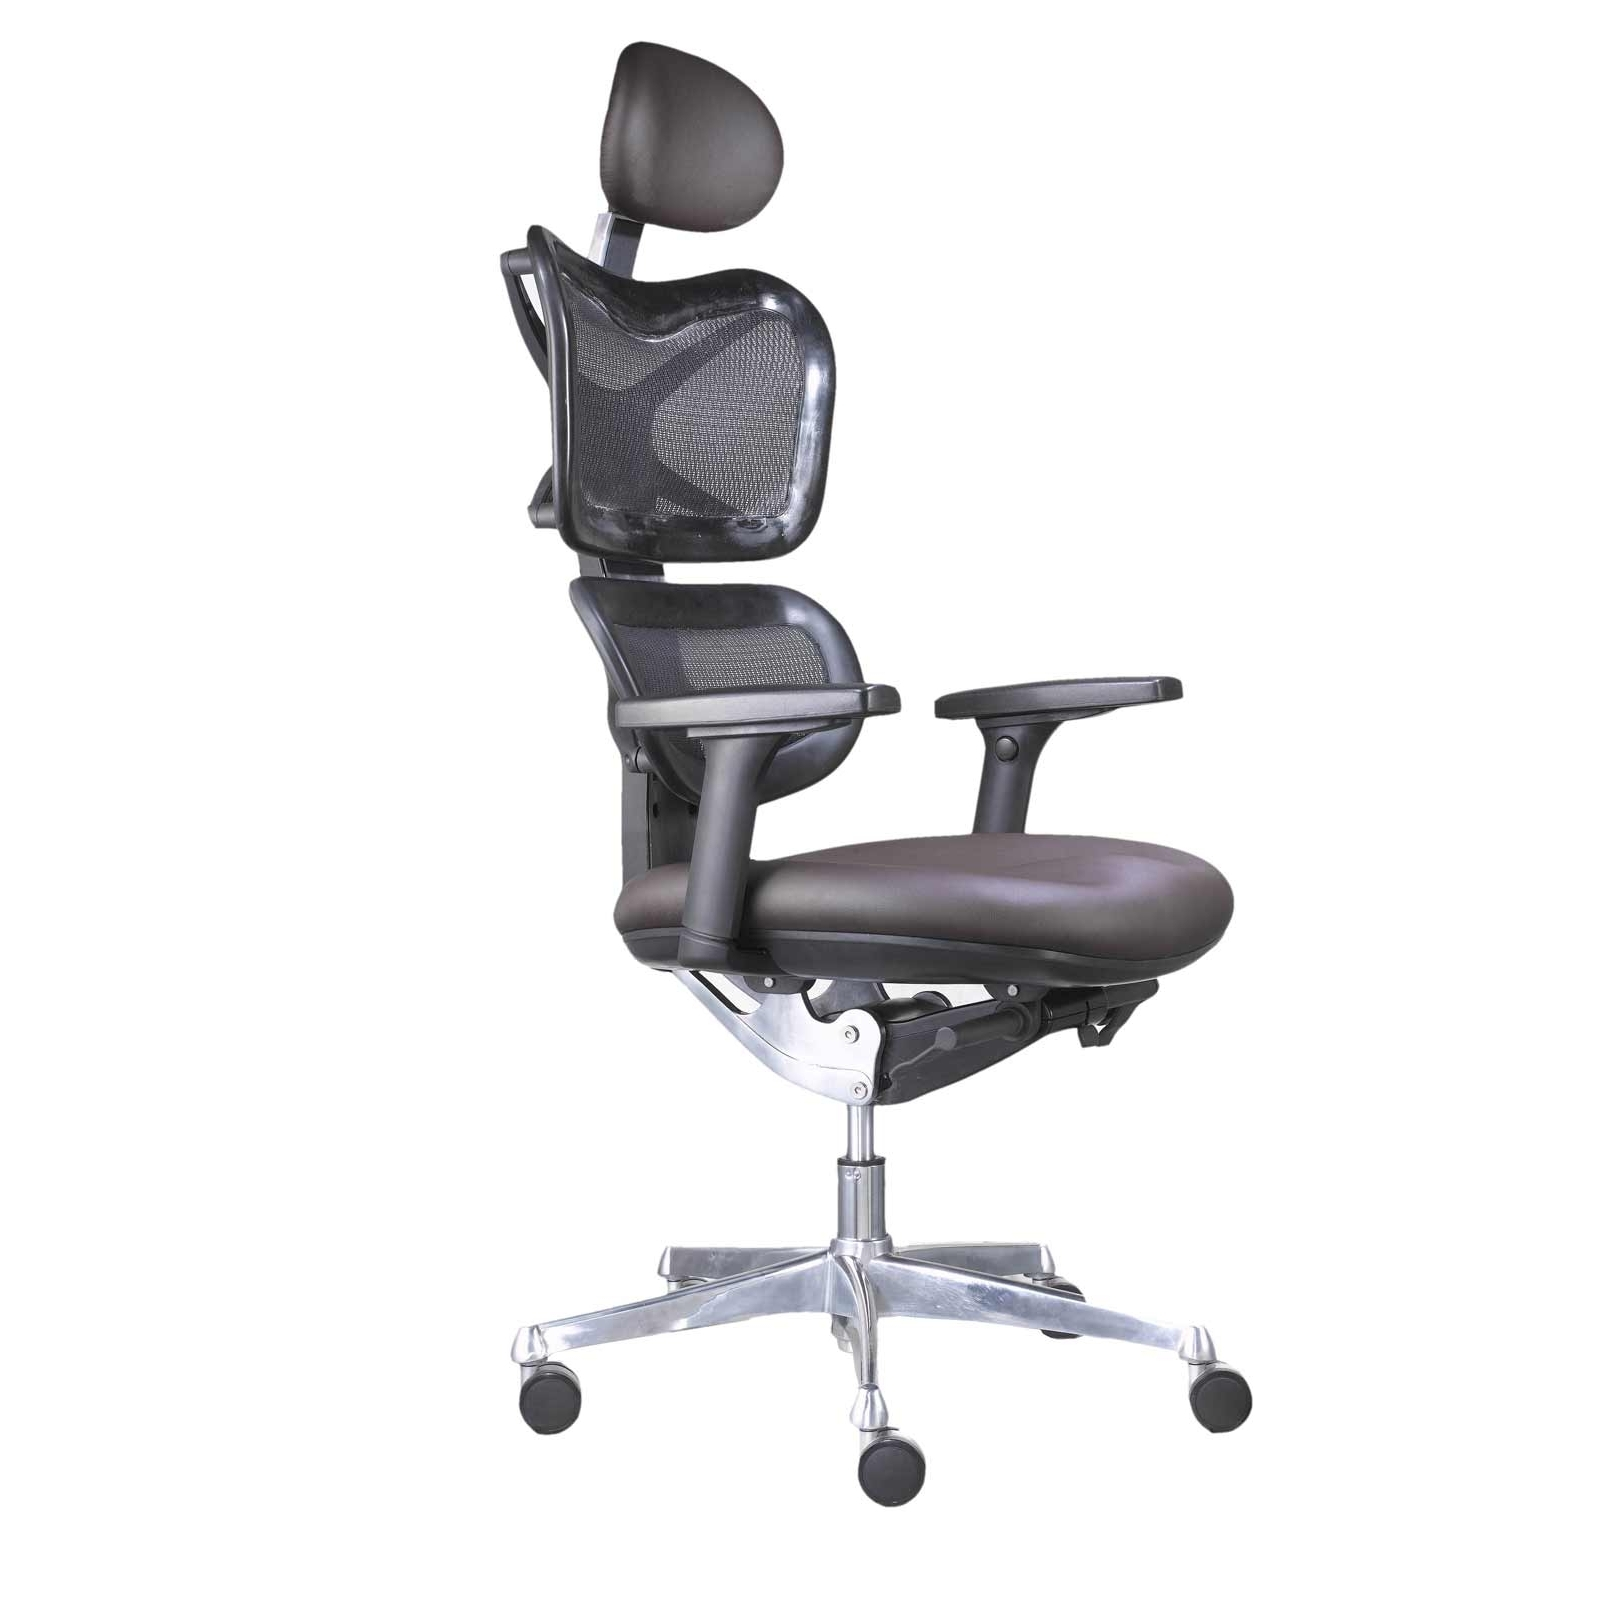 Executive Office Chairs With Headrest In Well Known High Back Mesh Office Chair With Headrest • Office Chairs (View 12 of 20)